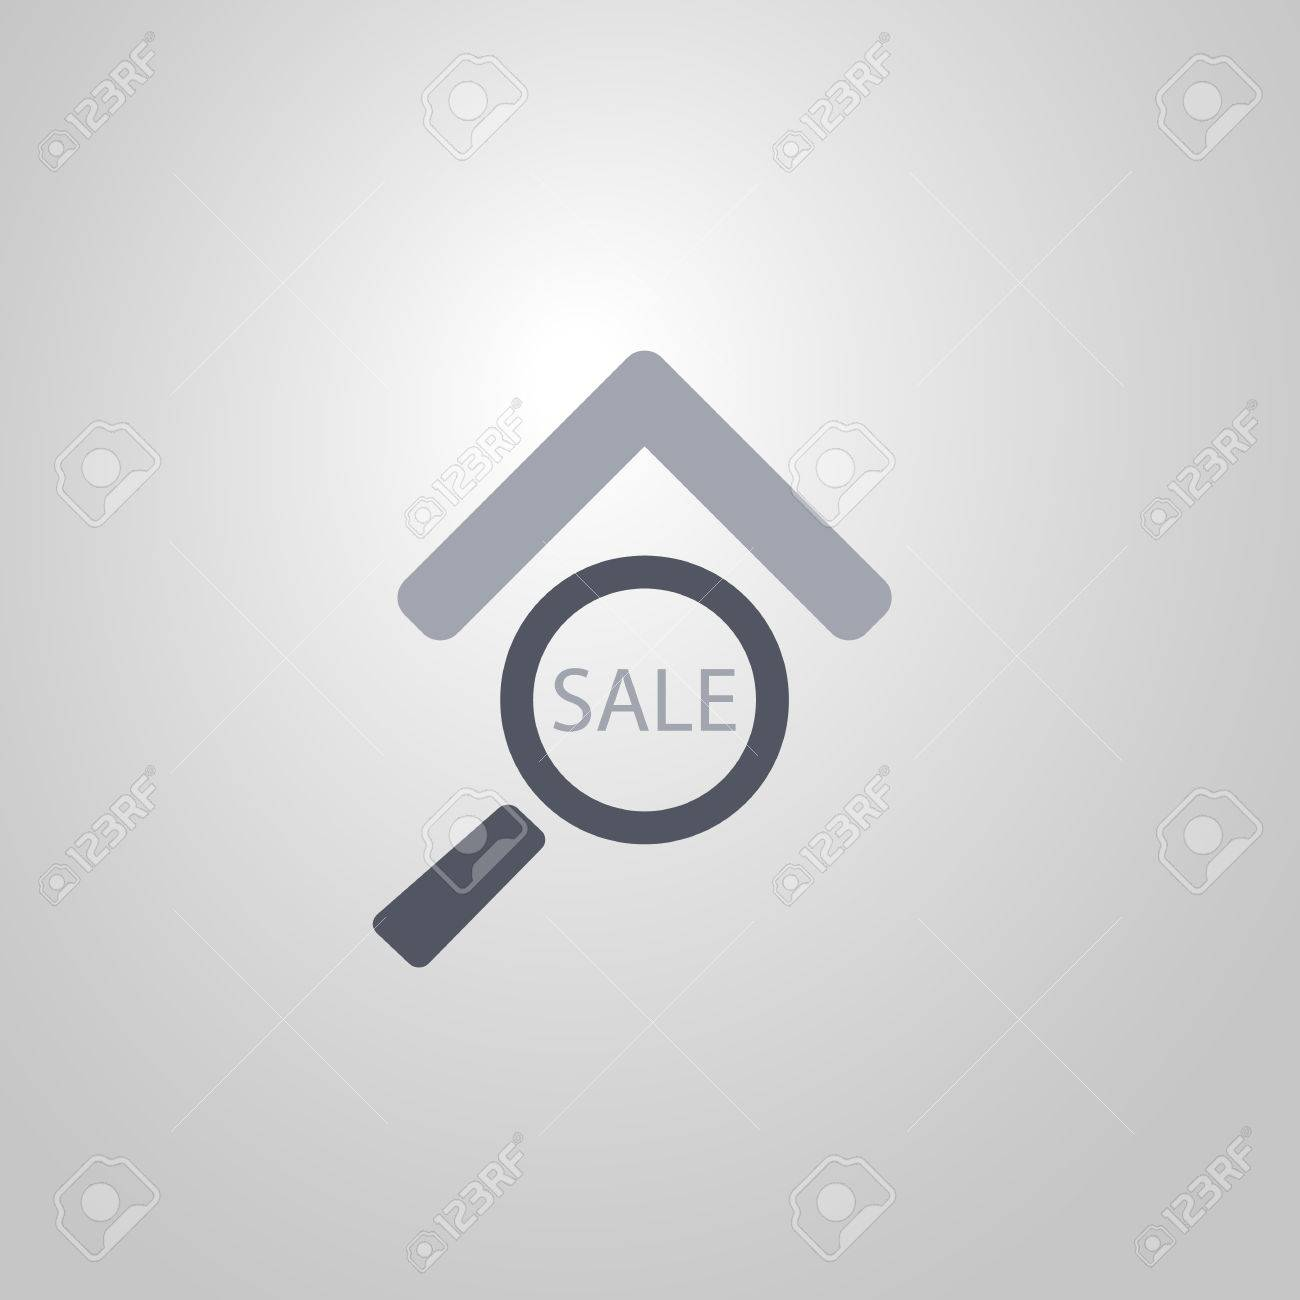 Real estate icon design looking for a house for sale flat symbol real estate icon design looking for a house for sale flat symbol banco de imagens biocorpaavc Choice Image